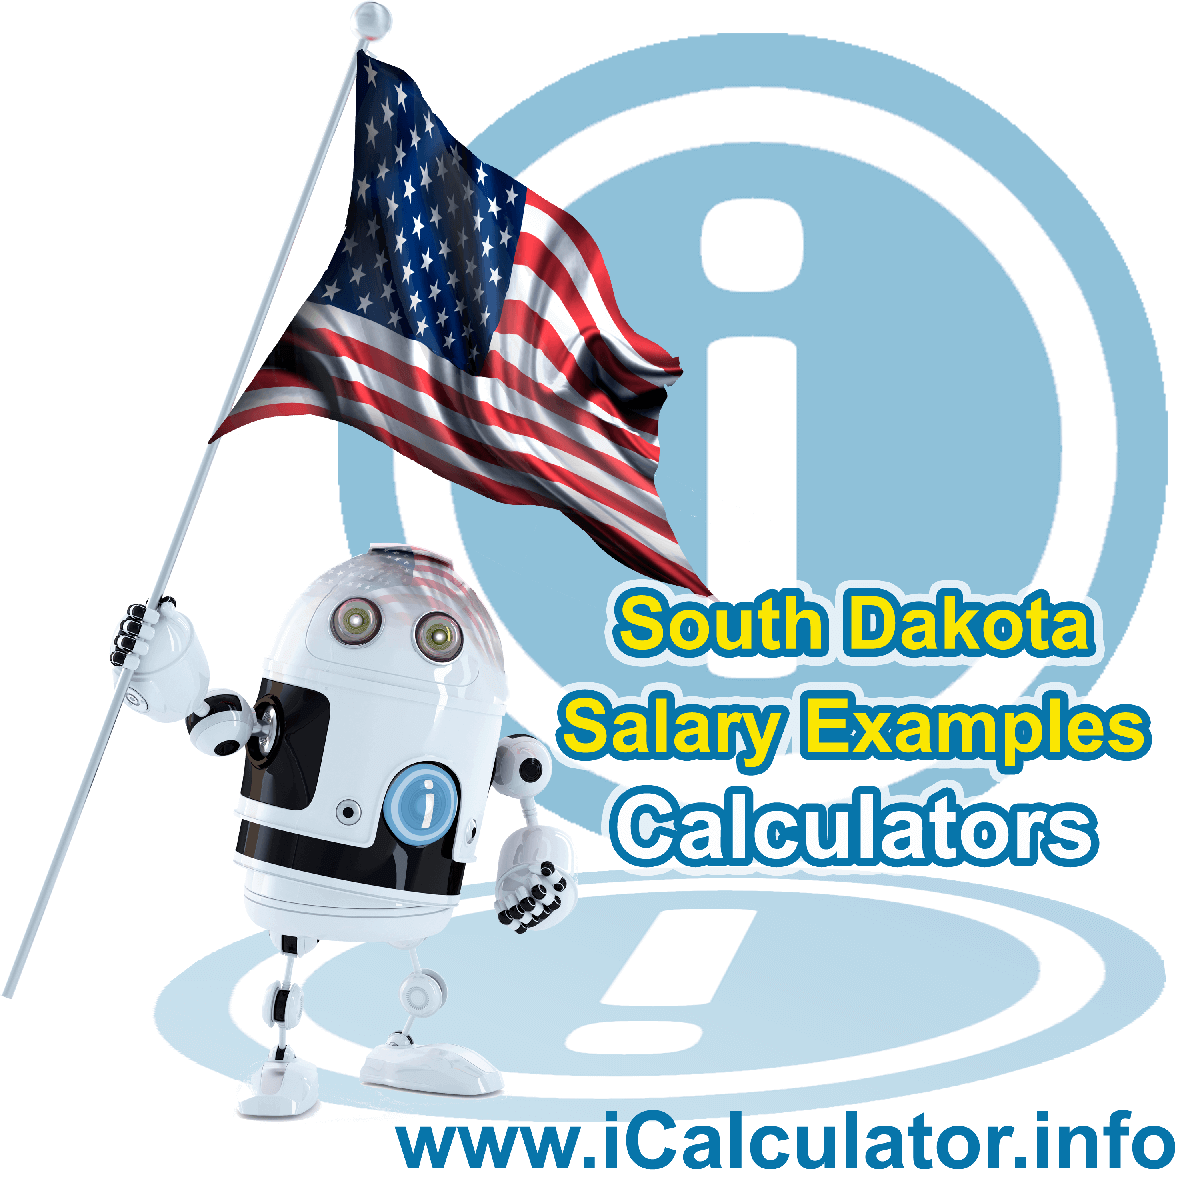 South Dakota Salary Example for $55,000.00 in 2020 | iCalculator | $55,000.00 salary example for employee and employer paying South Dakota State tincome taxes. Detailed salary after tax calculation including South Dakota State Tax, Federal State Tax, Medicare Deductions, Social Security, Capital Gains and other income tax and salary deductions complete with supporting South Dakota state tax tables